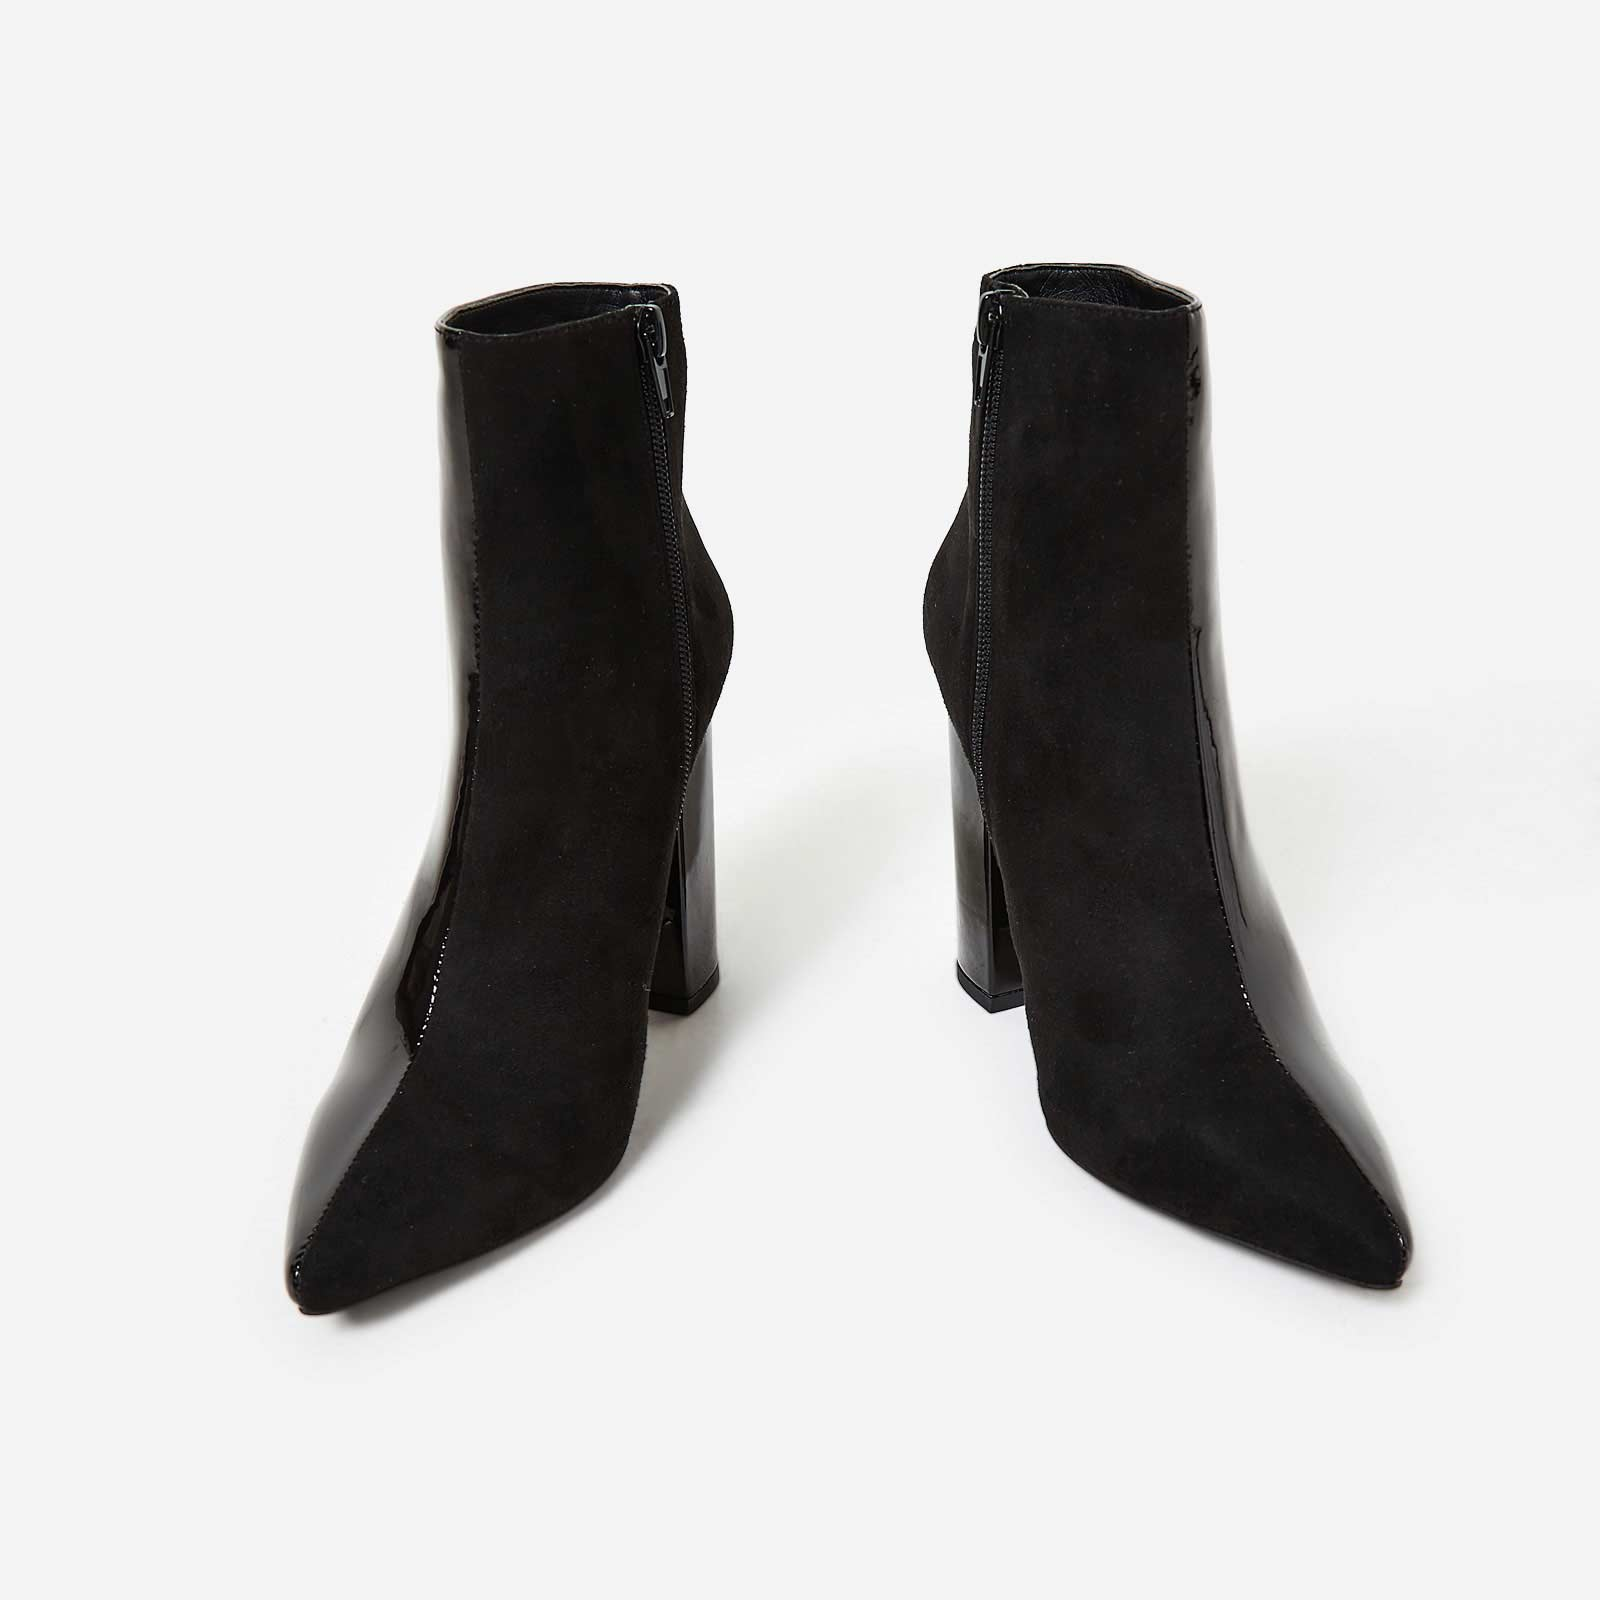 Toro Two Tone Ankle Boot In Black Patent And Faux Suede